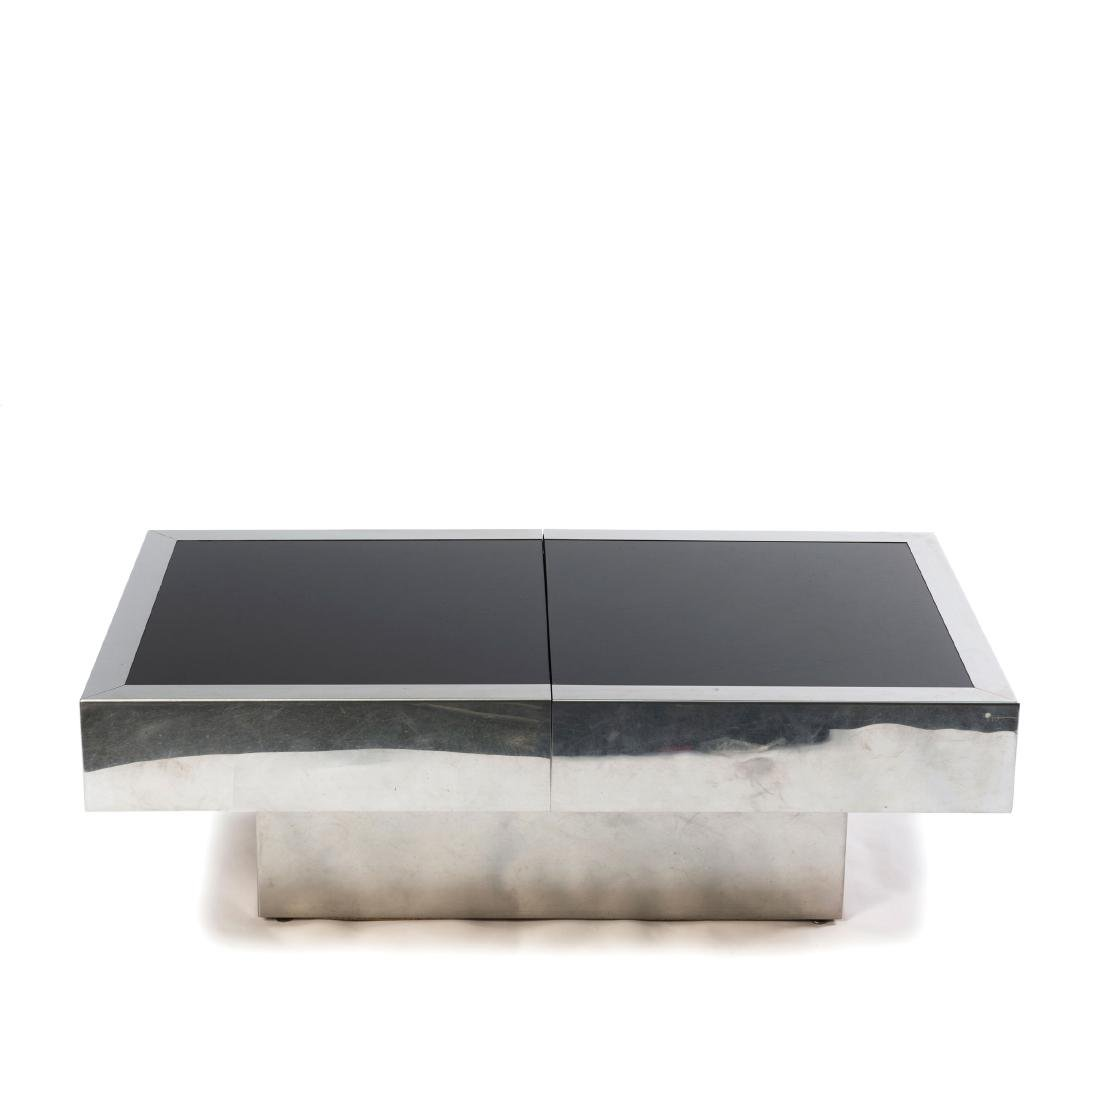 Coffee table, c. 1965